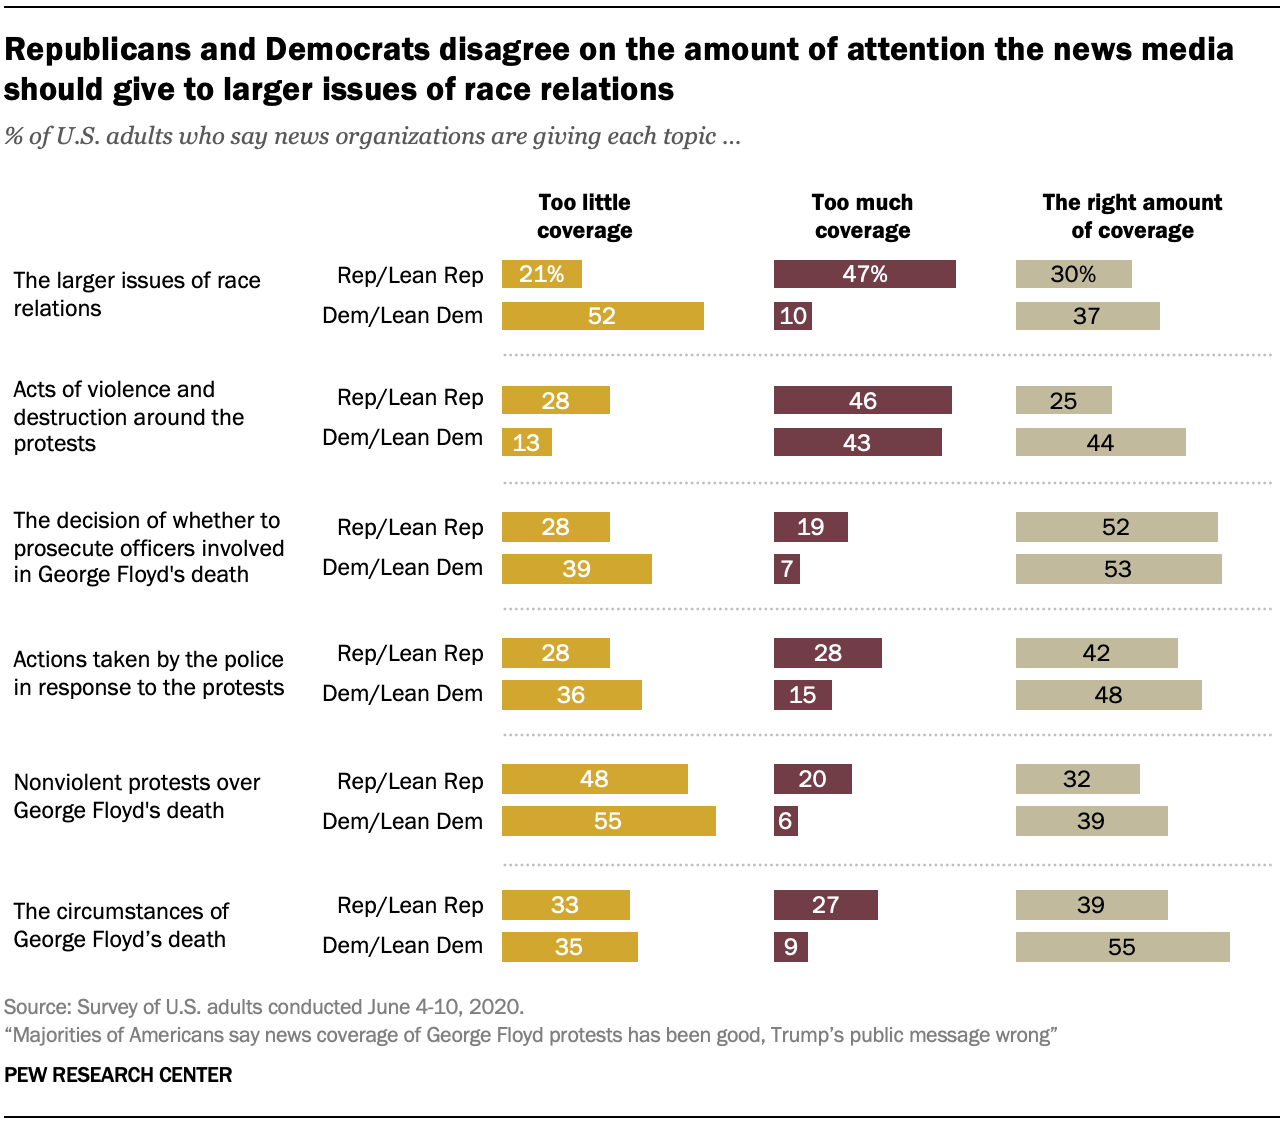 Republicans and Democrats disagree on the amount of attention the news media should give to larger issues of race relations